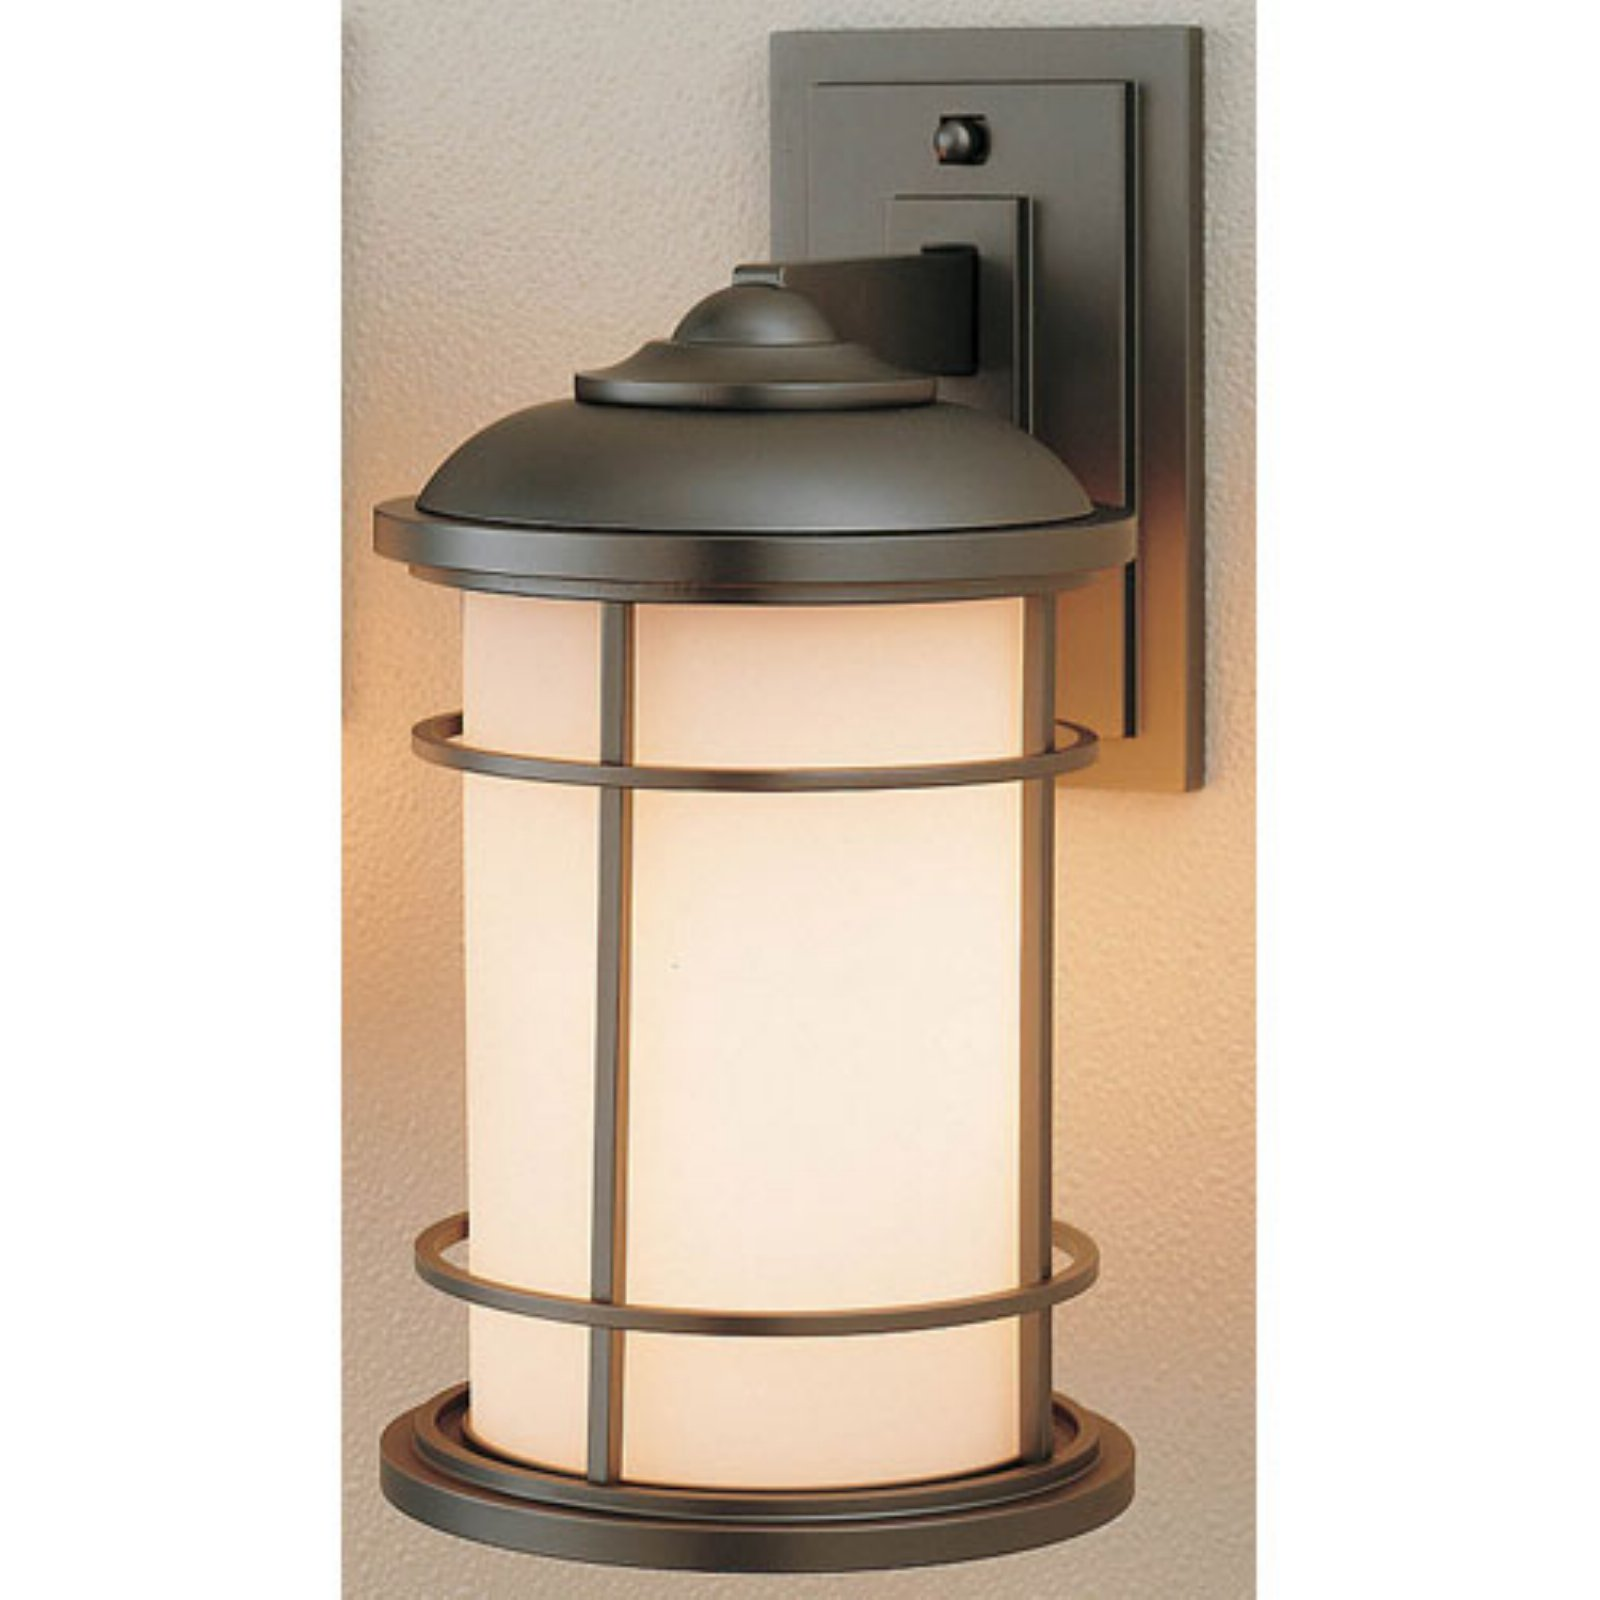 Feiss Lighthouse Outdoor Wall Lantern - 13.5H in. Burnished Bronze